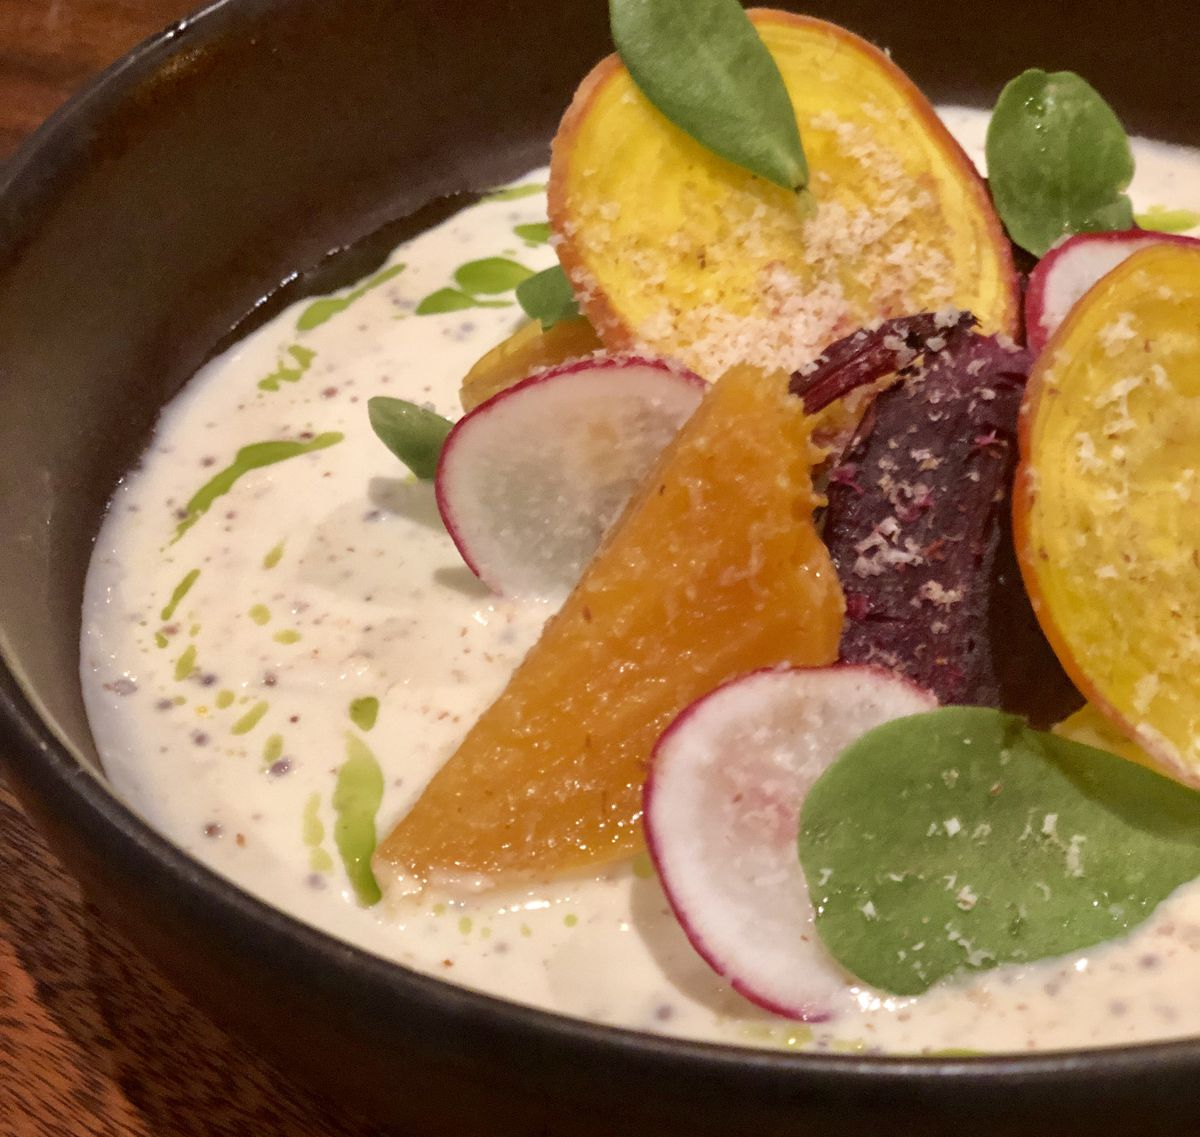 A beets salad in a circular bowl sitting in cheese fondue.